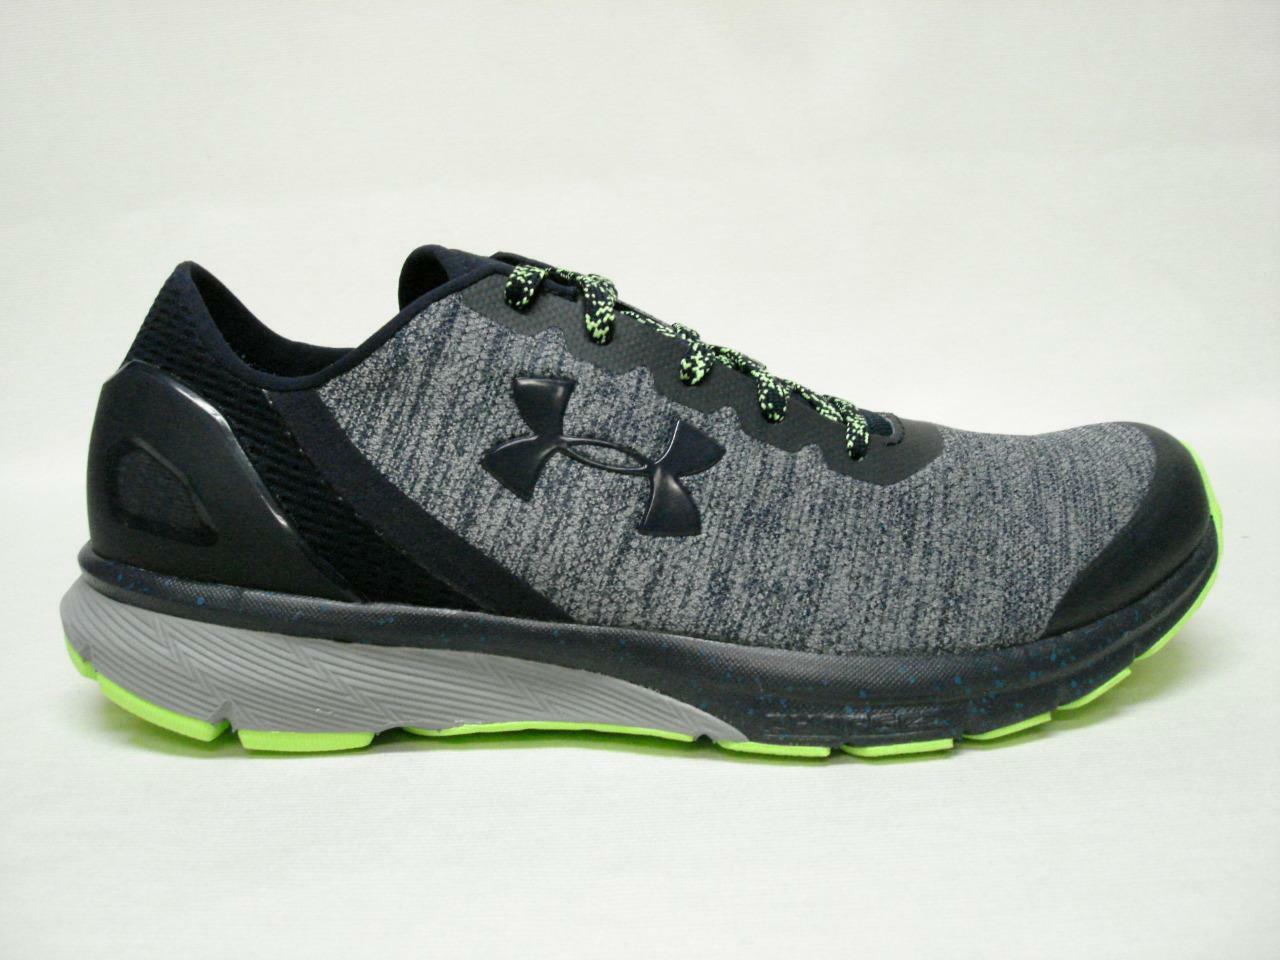 NIB UNDER ARMOUR MENS SHOE'S CHARGED ESCAPE MDN/RYL 9 AWESOME LOOKING SHOE'S